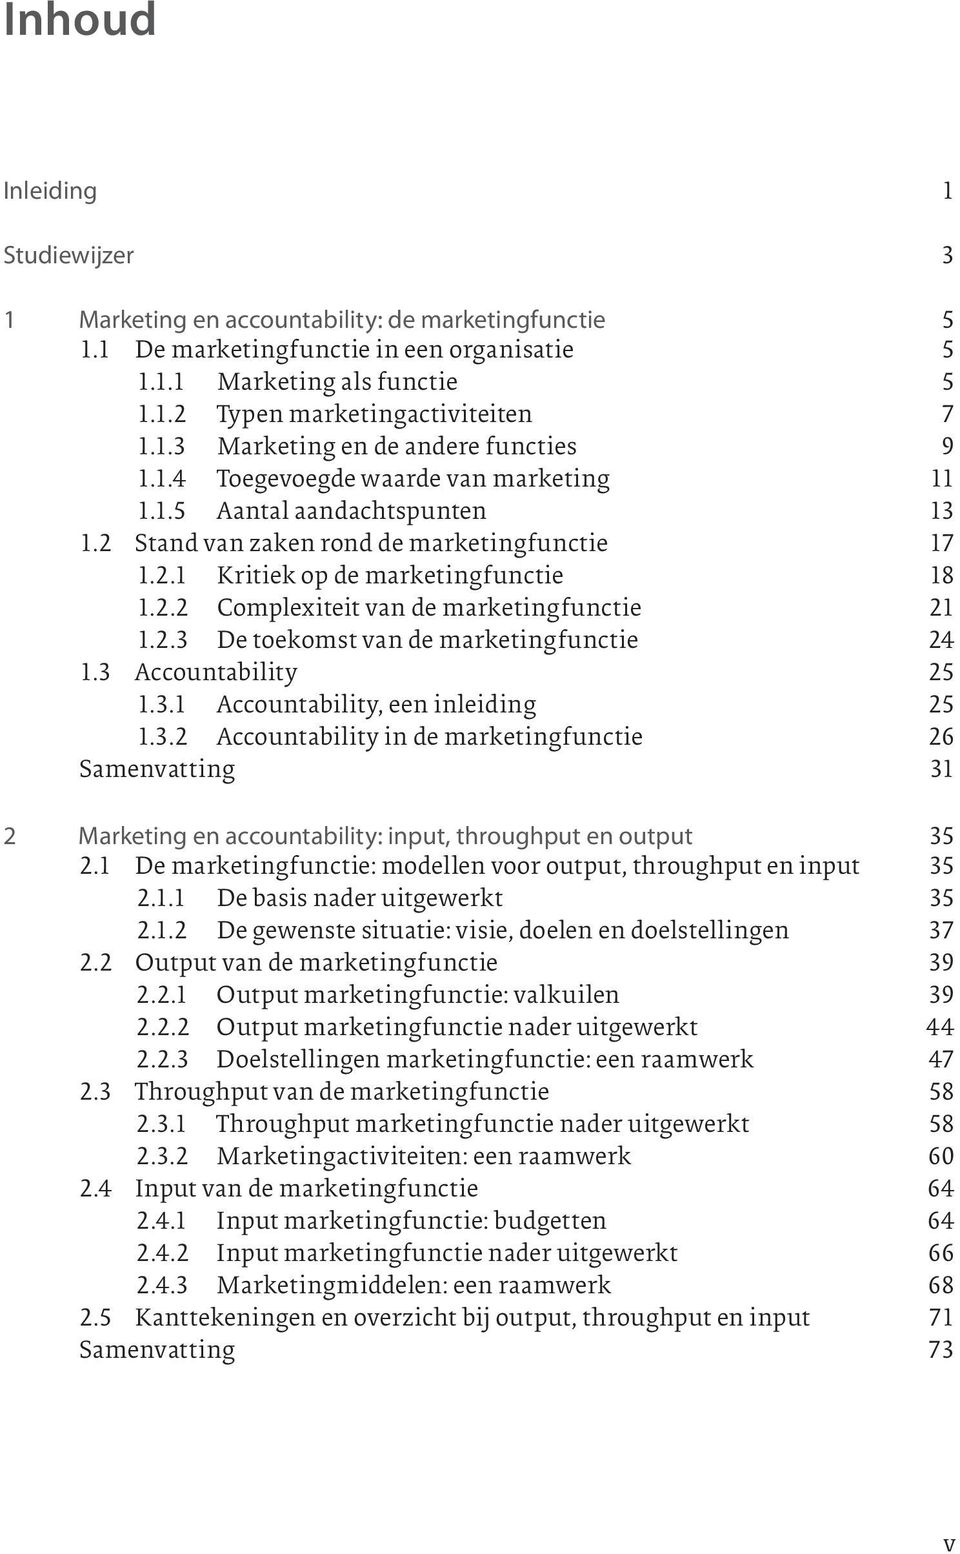 2.2 Complexiteit van de marketingfunctie 21 1.2.3 De toekomst van de marketingfunctie 24 1.3 Accountability 25 1.3.1 Accountability, een inleiding 25 1.3.2 Accountability in de marketingfunctie 26 Samenvatting 31 2 Marketing en accountability: input, throughput en output 35 2.